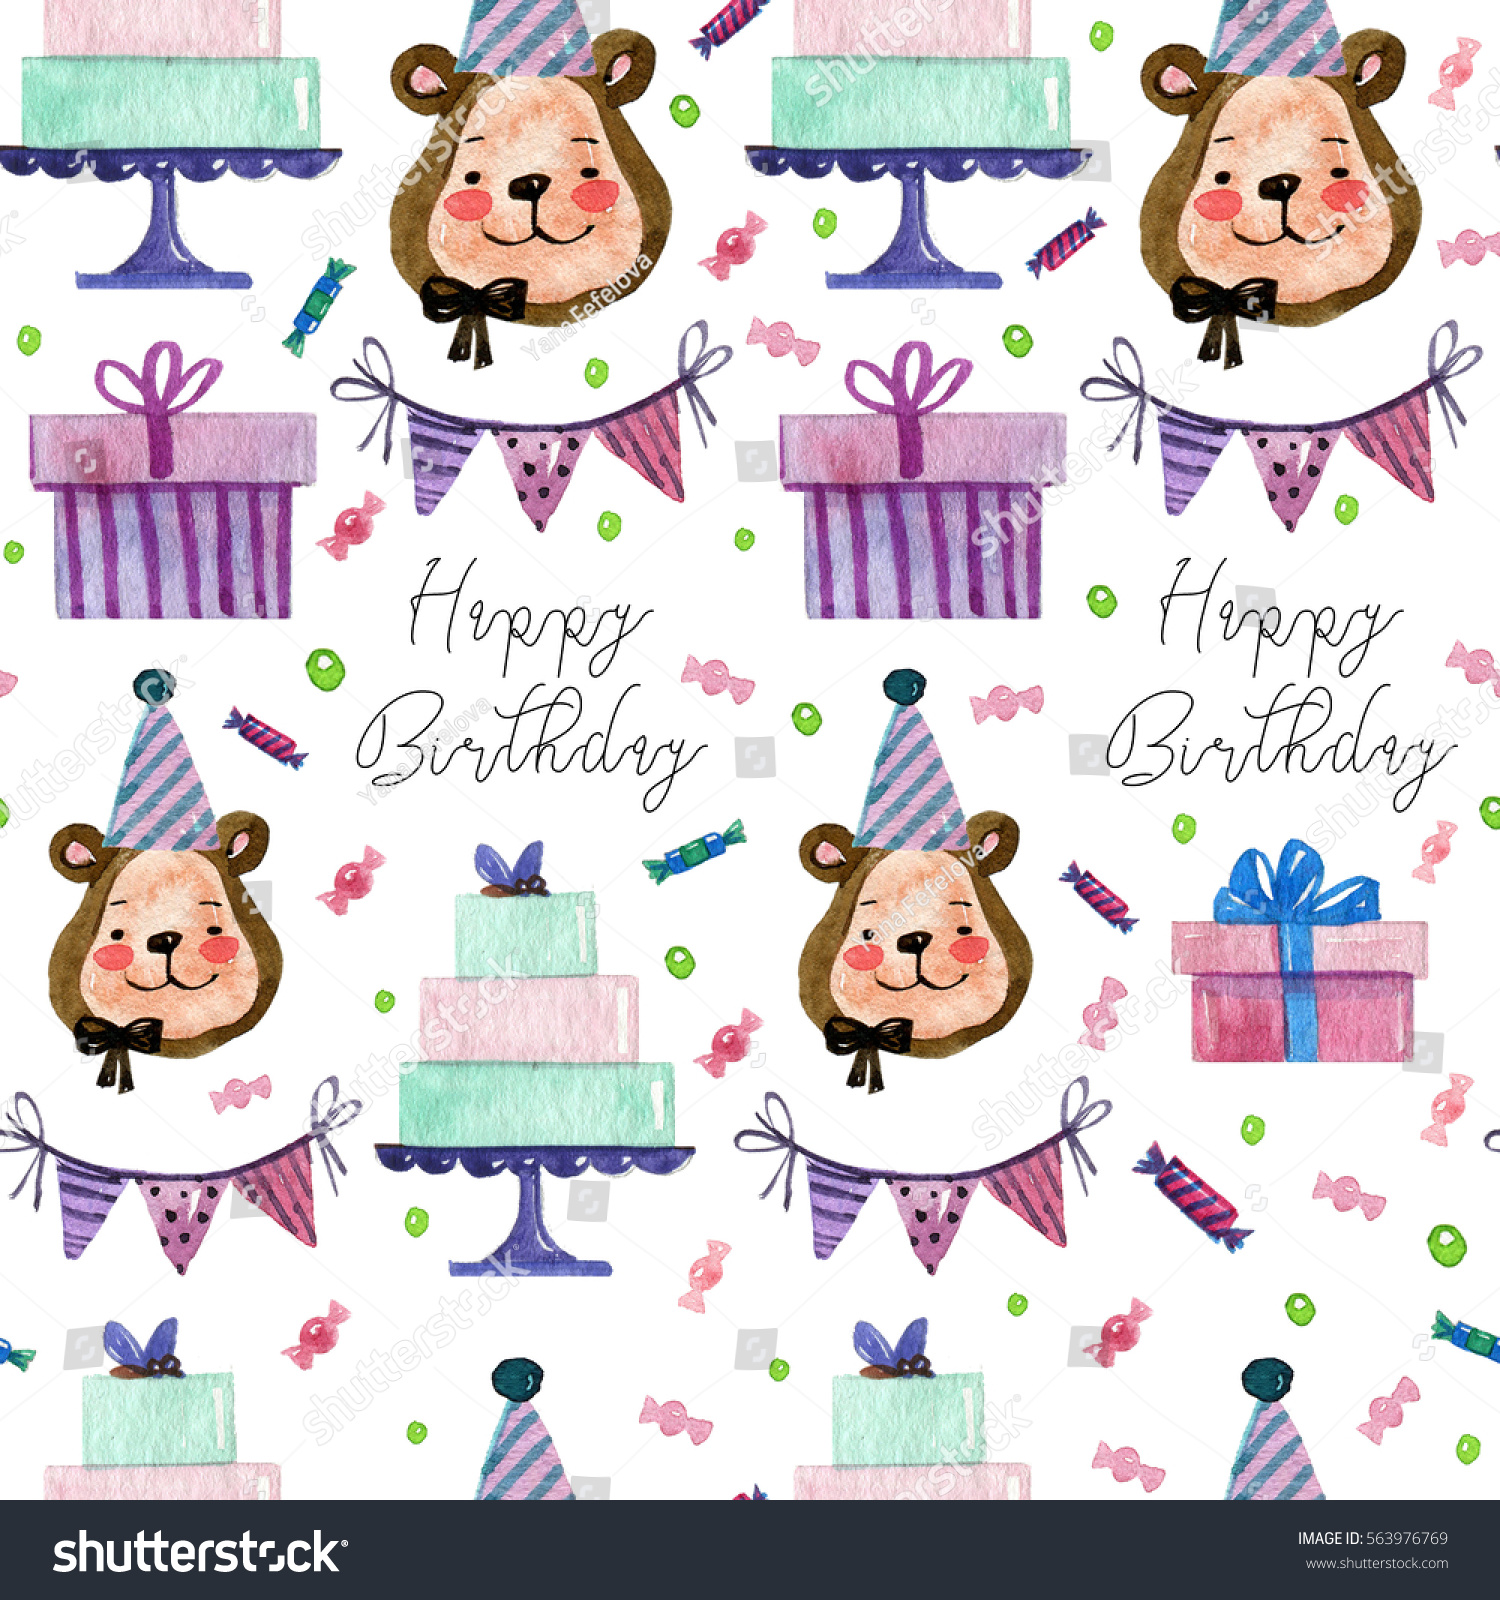 Watercolor Hand Drawing Pattern Birthday Elements Stock Illustration